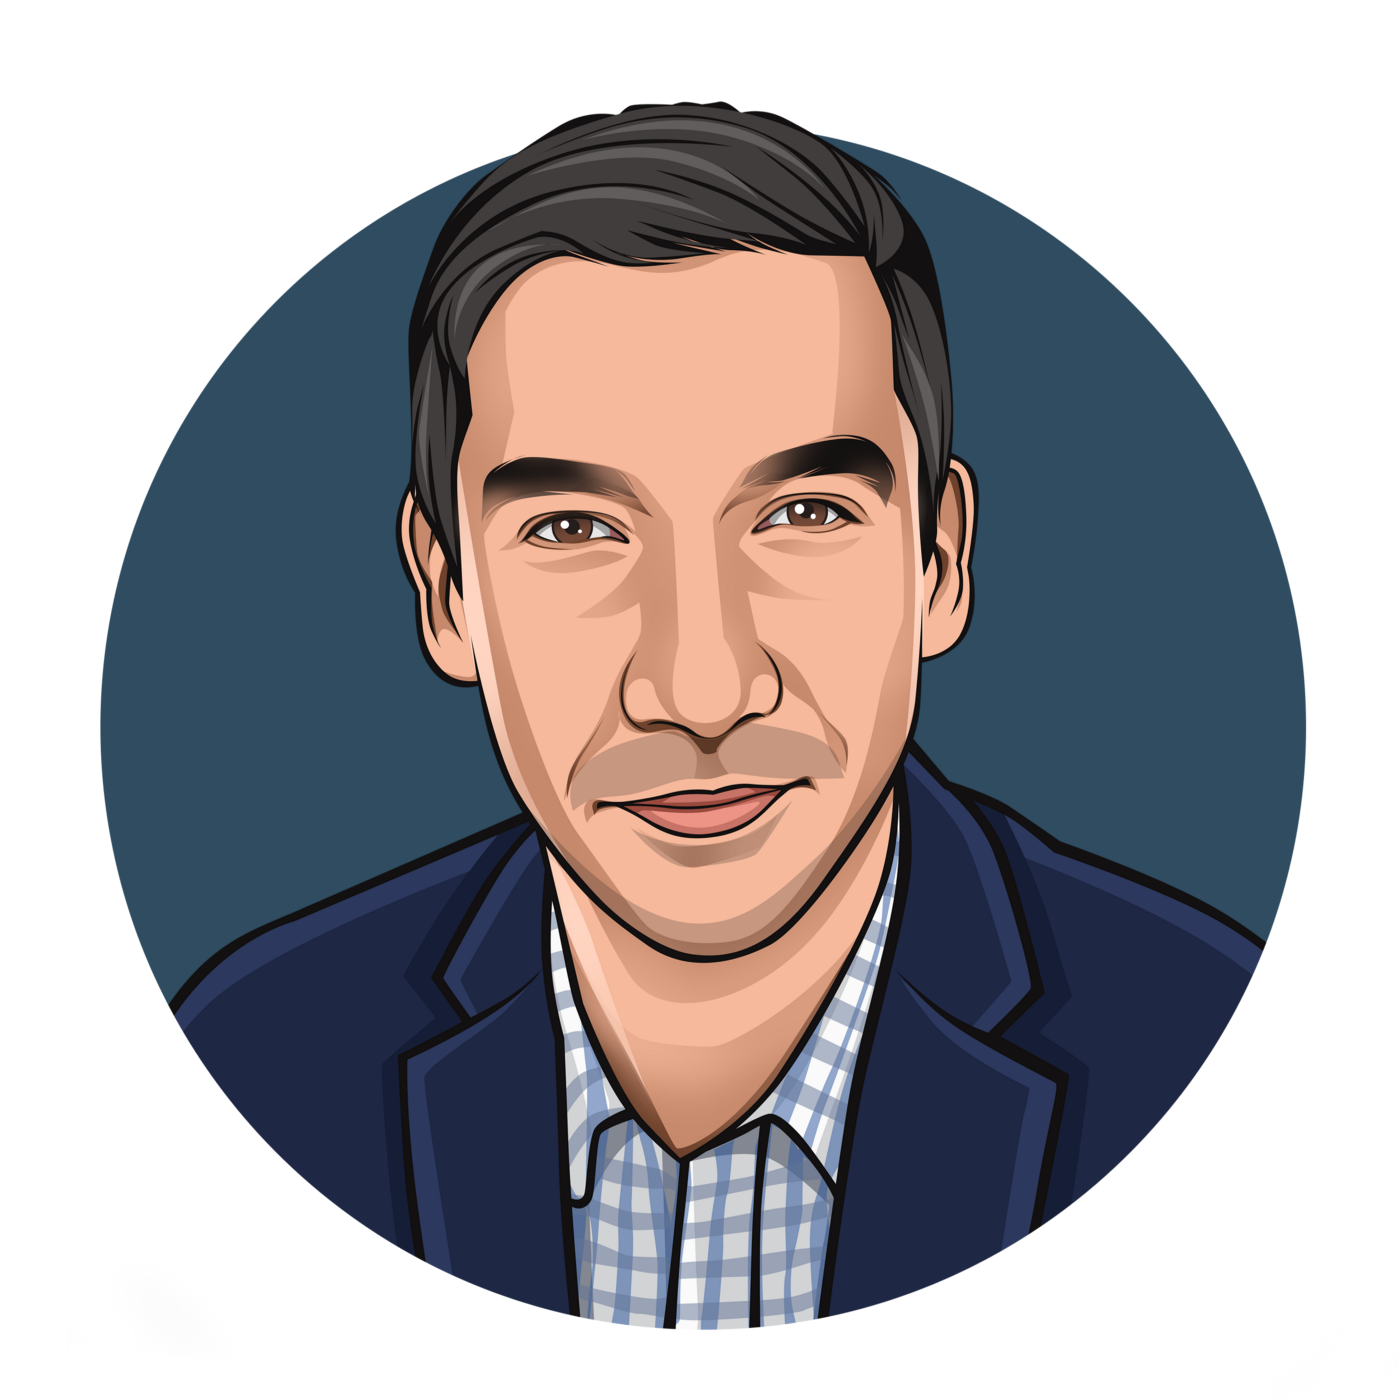 Jacobo Ortega, Co-Founder and CEO of Everscale Group